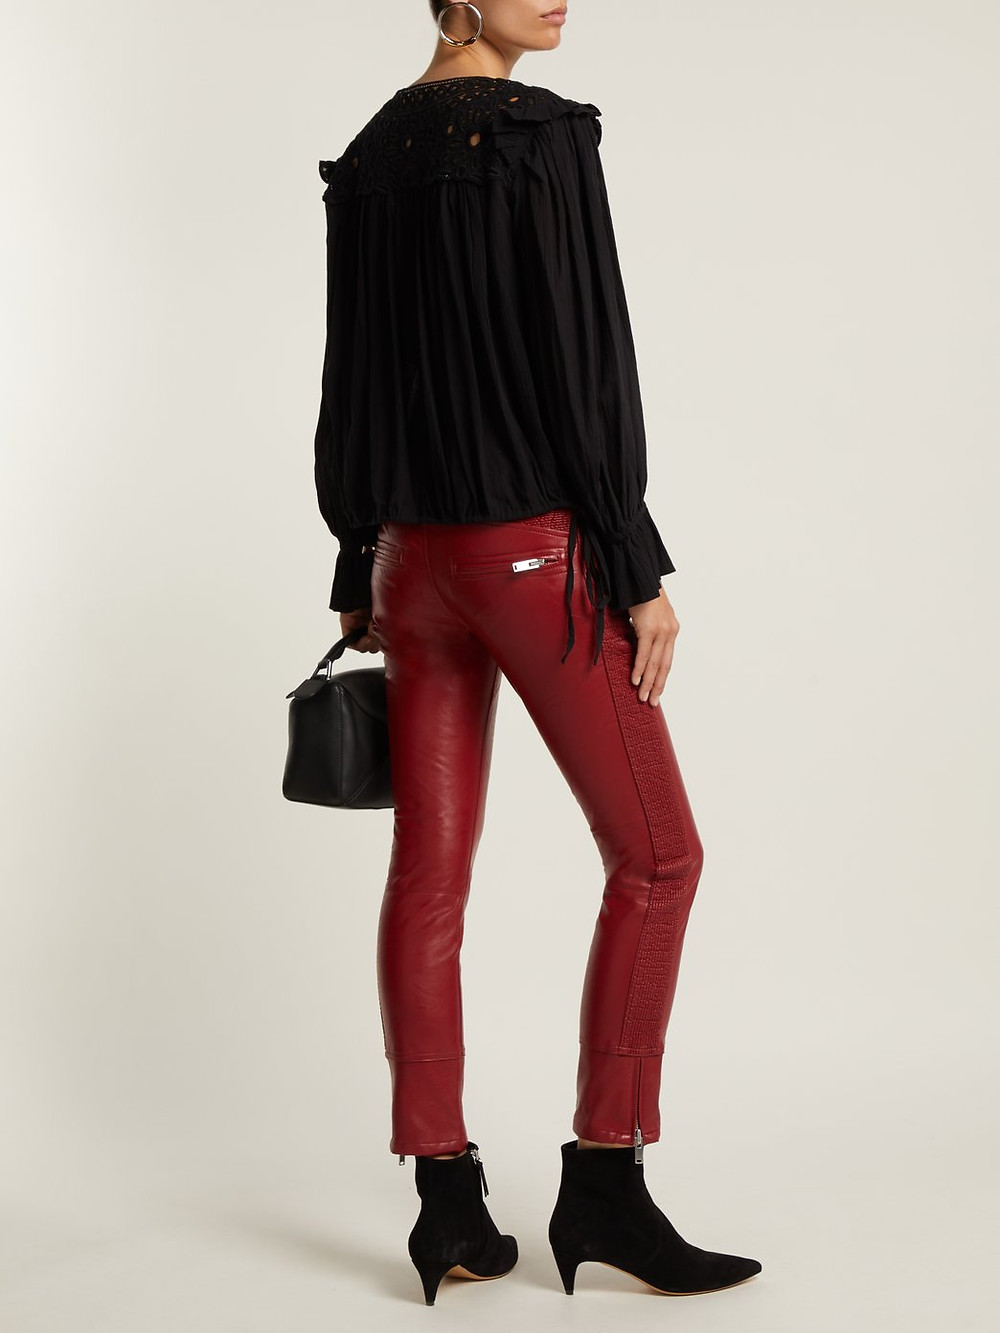 Isabel Marant Etoile Zappery faux-leather trousers $495